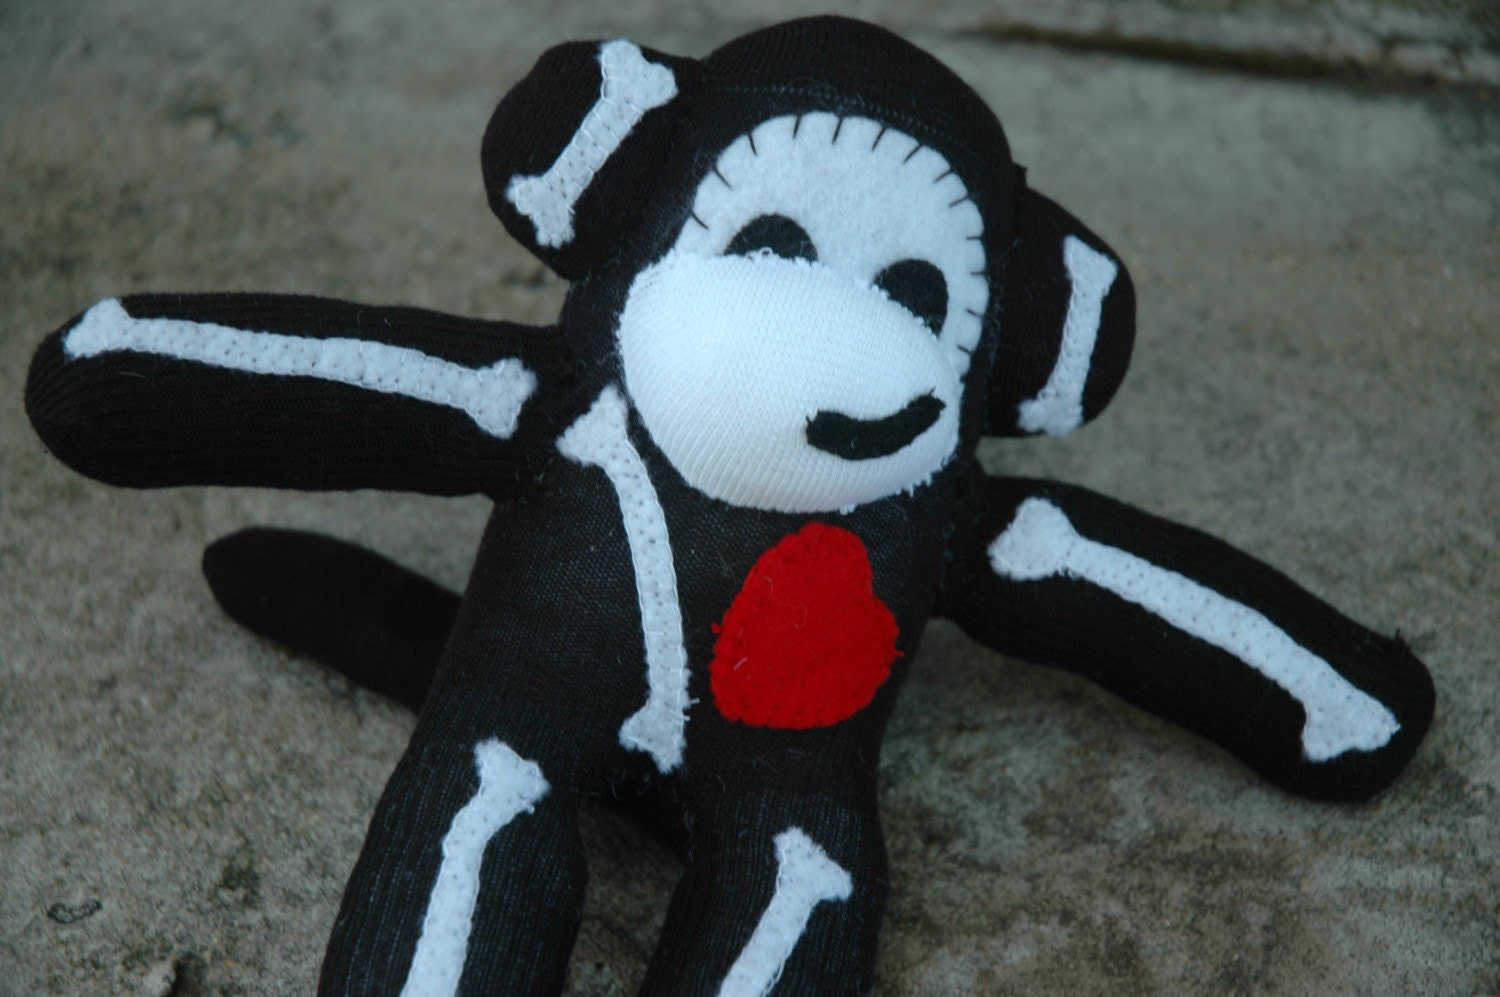 Medium size Jack the undead sock monkey